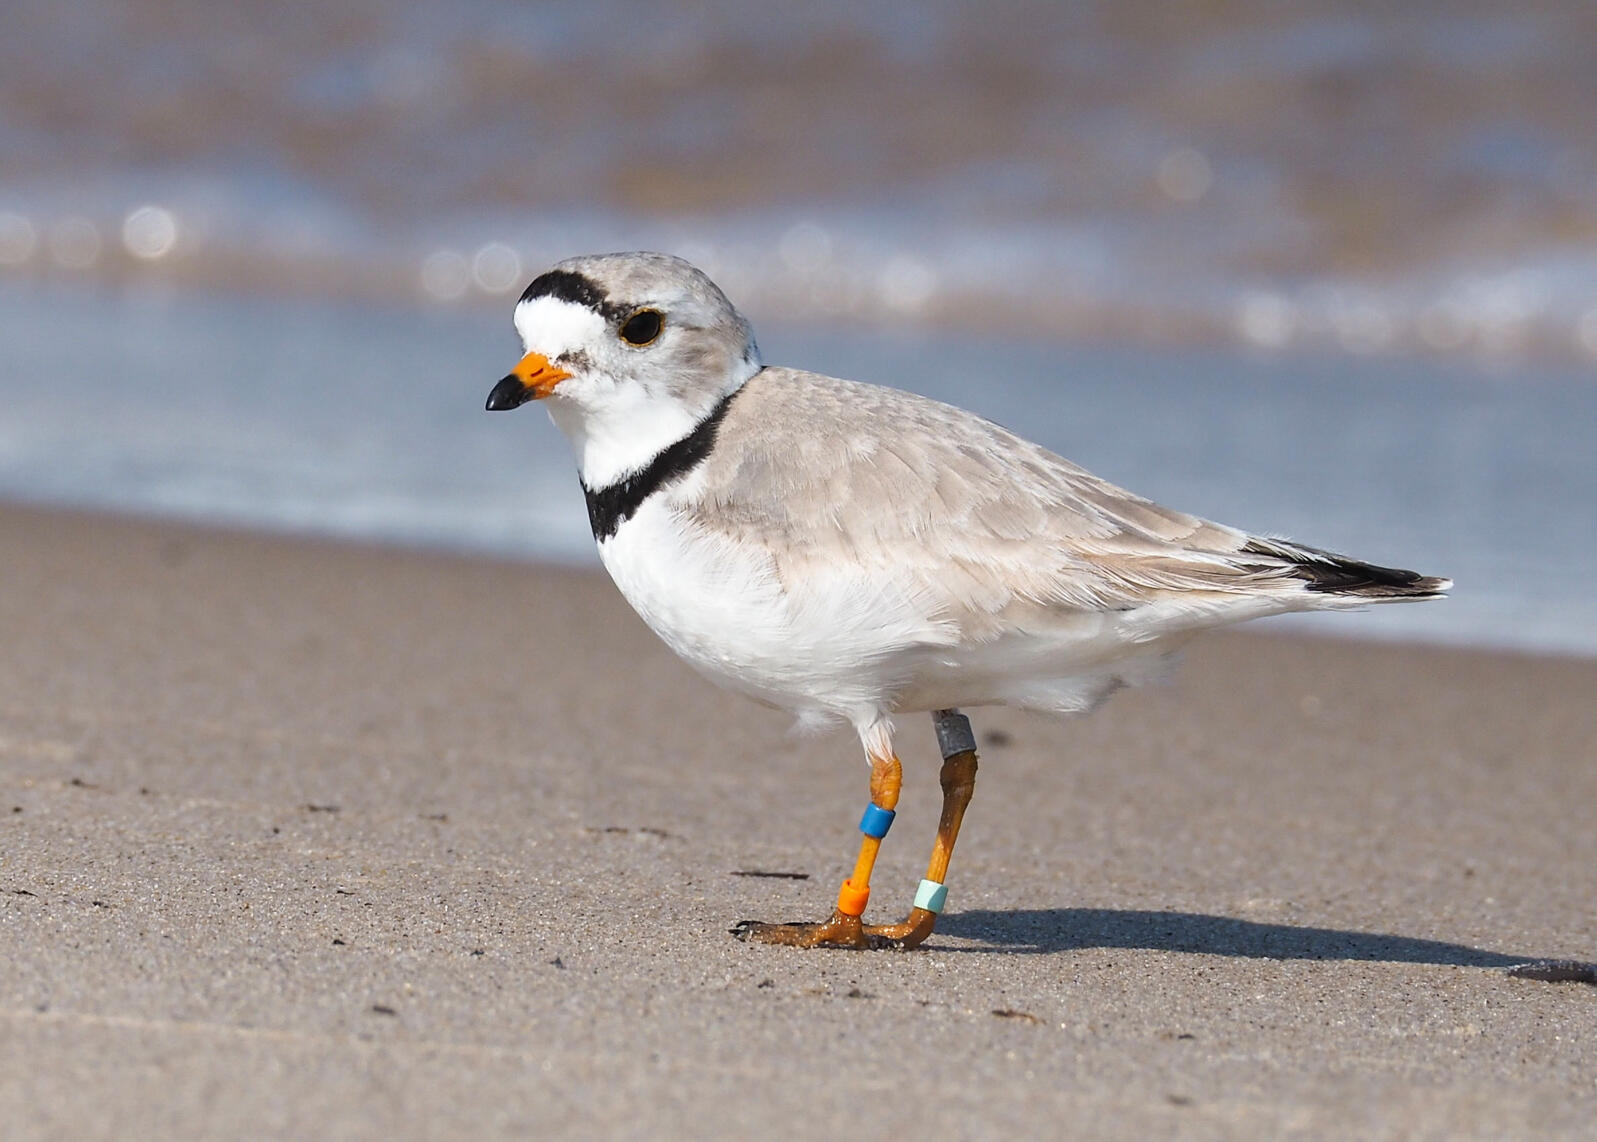 """At 15 years old, Old Man Plover """"tends to be relatively relaxed"""" when people are nearby, biologist Alice Van Zoeren says. He's also known as BO:X,g for his combination of colorful bands, including the metal USGS one on his right leg. Alice Van Zoeren"""